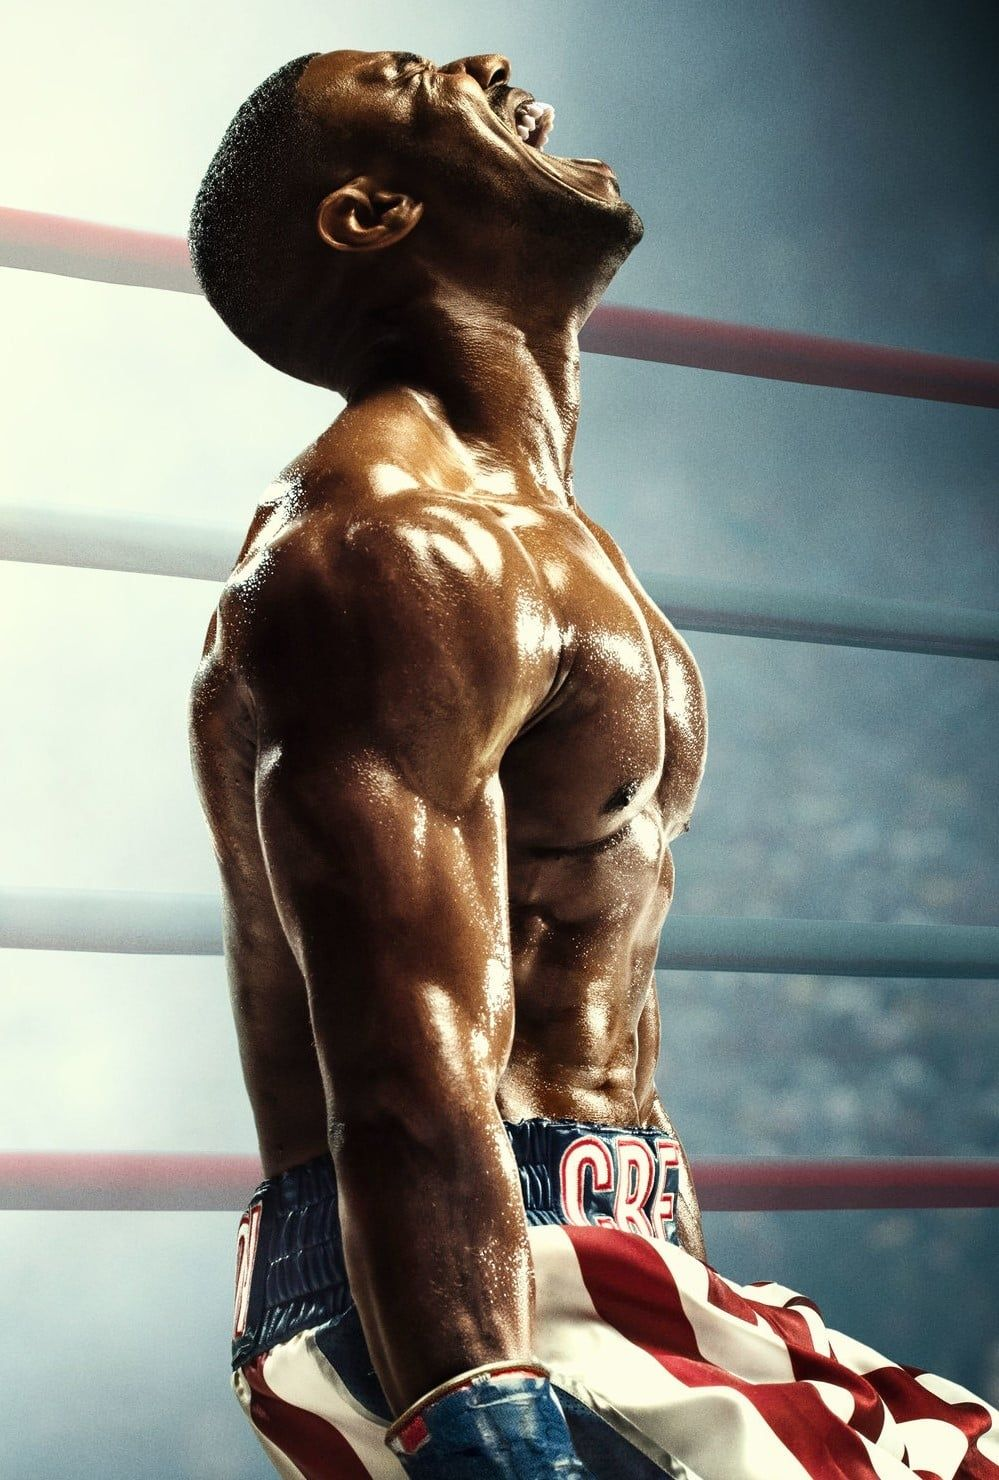 Creed 2 En Streaming : creed, streaming, DOWNLOAD, Creed, FULL, MOVIE, HD1080p, English, Filme, Creed,, Lutador, Boxe,, Pôsteres, Filmes